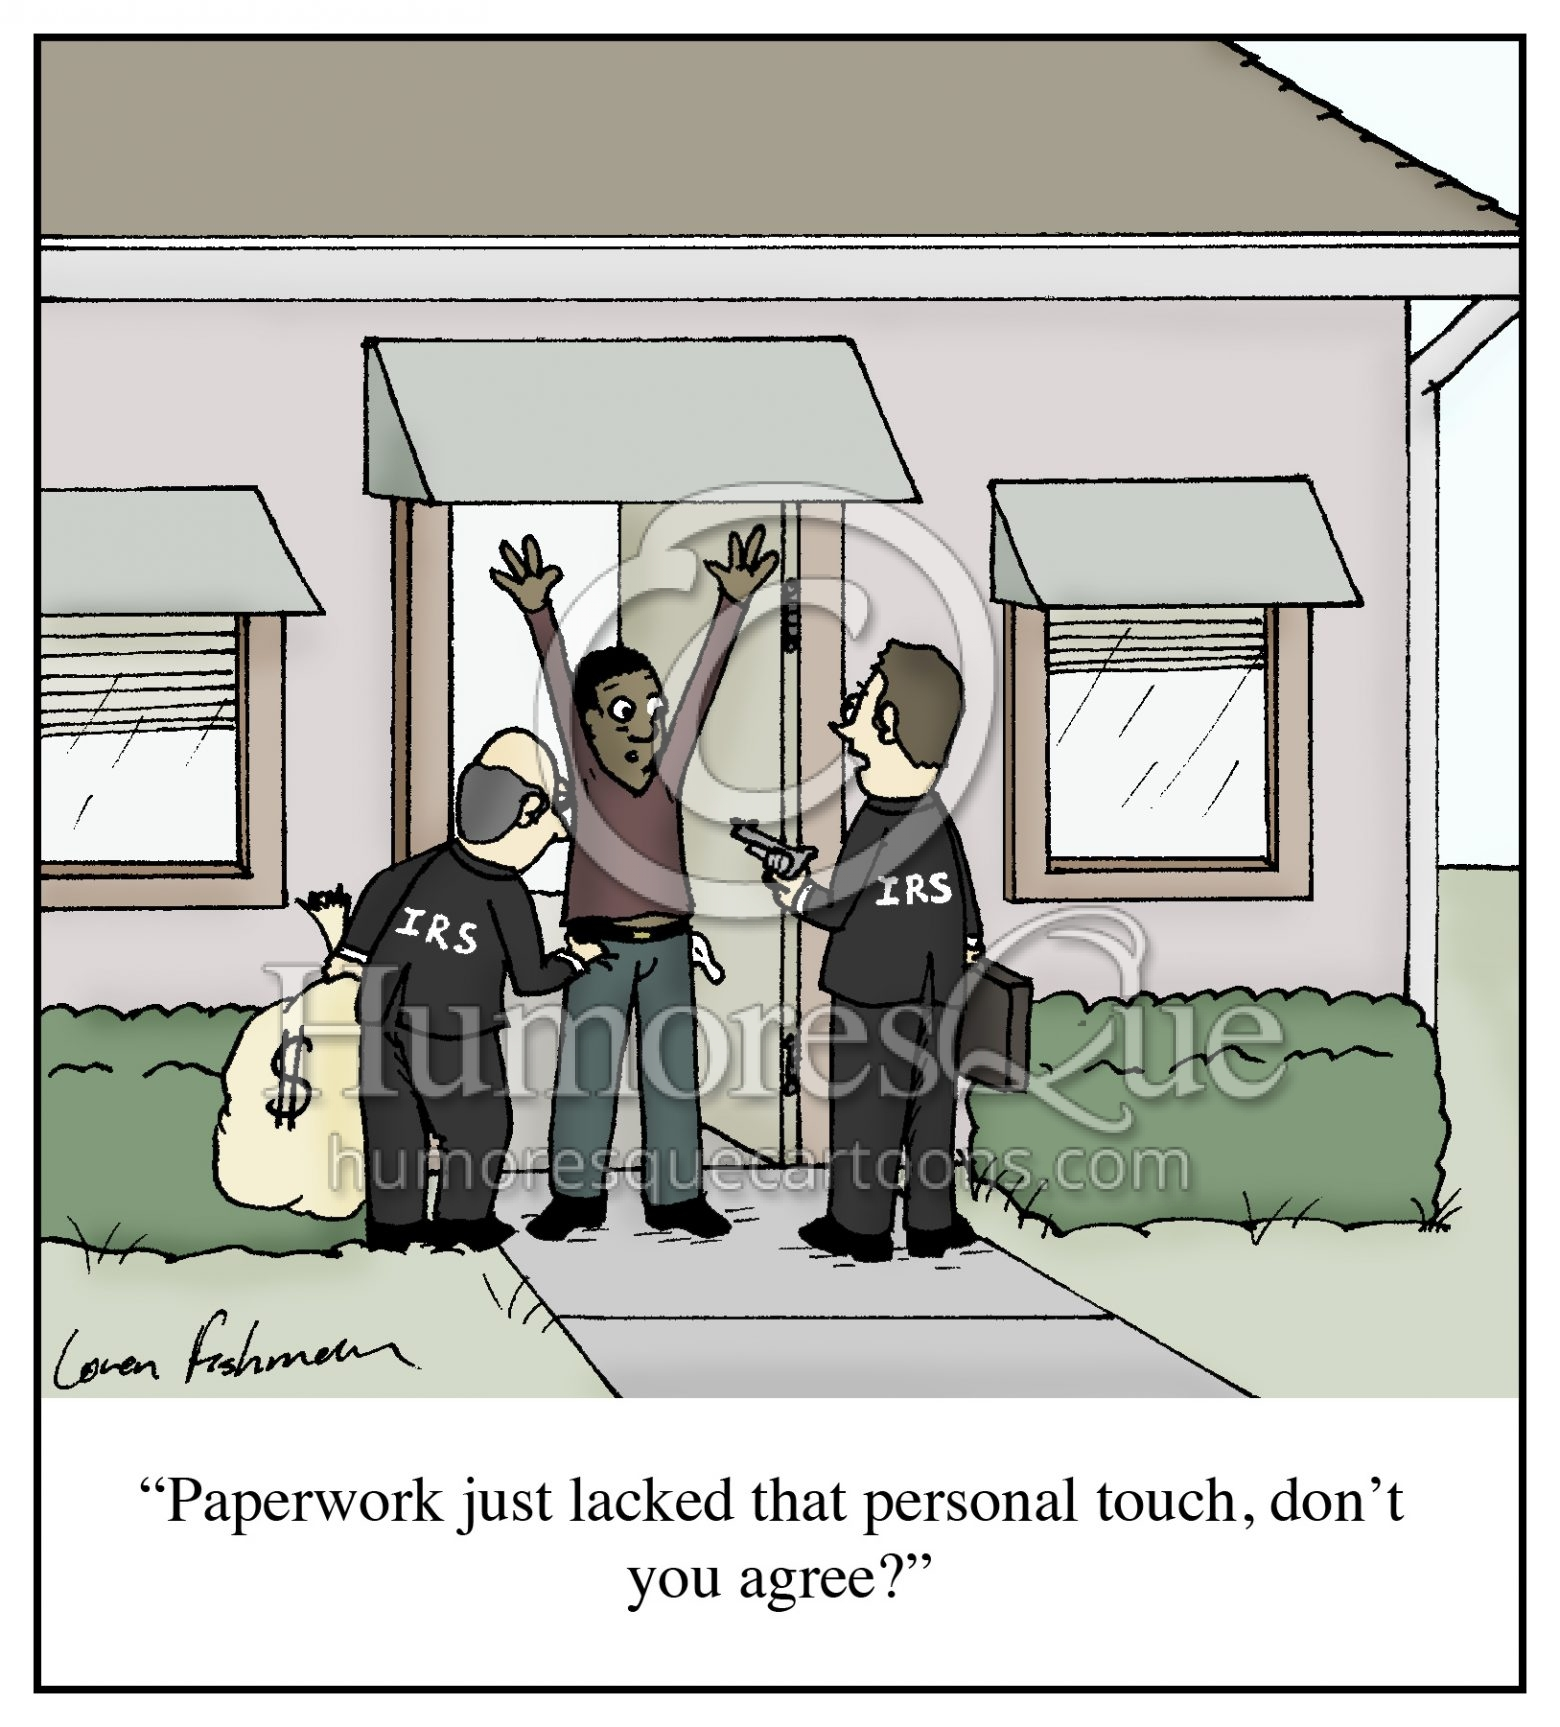 IRS agents robbing people instead of paperwork cartoon